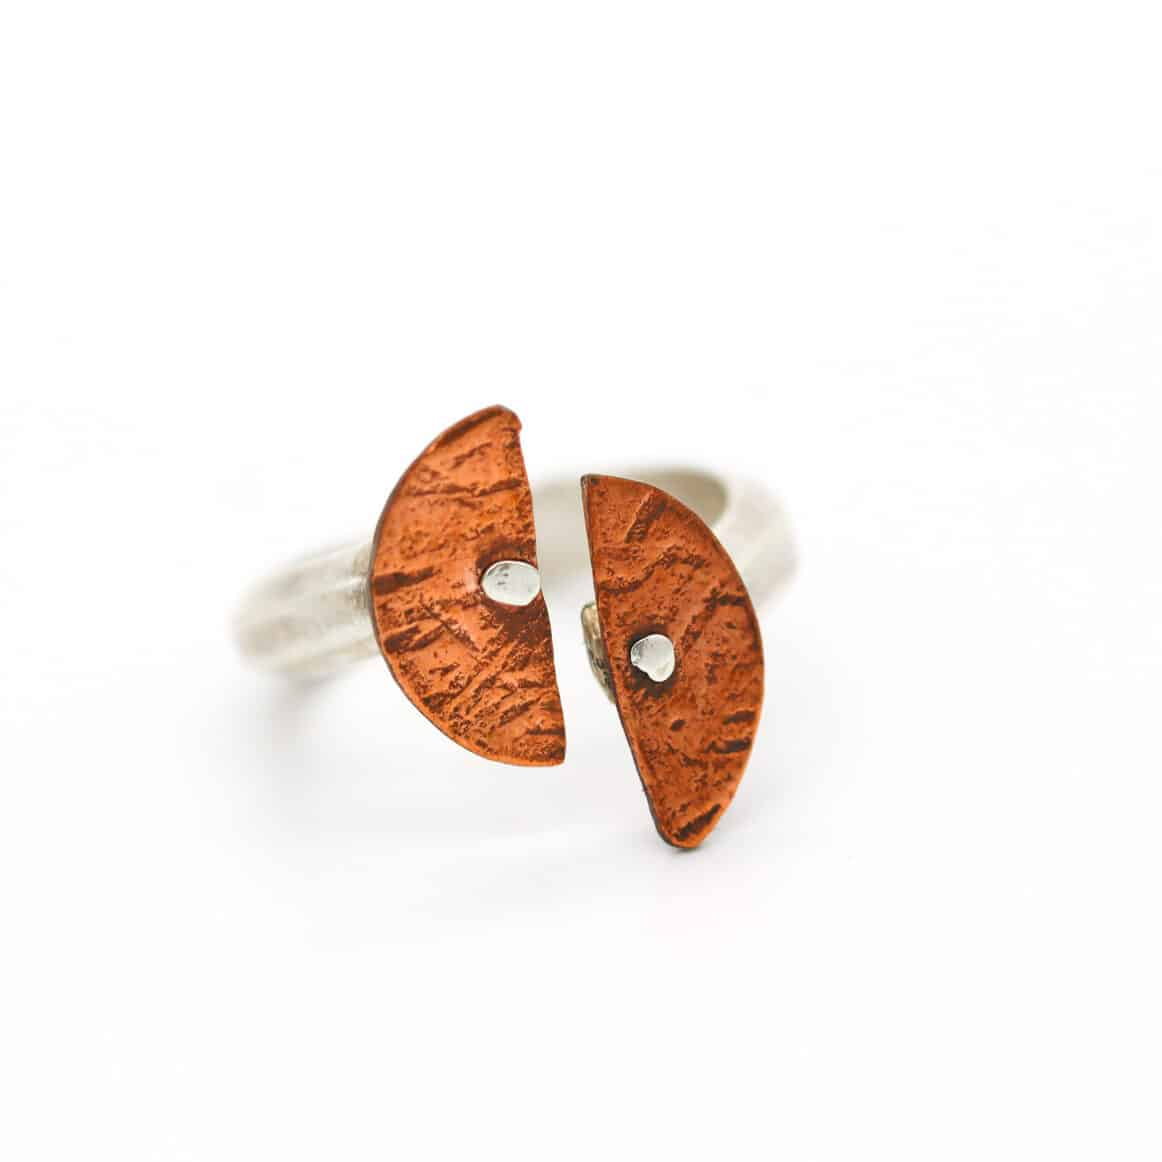 Copper And STG Split Ring By Of That Ilk